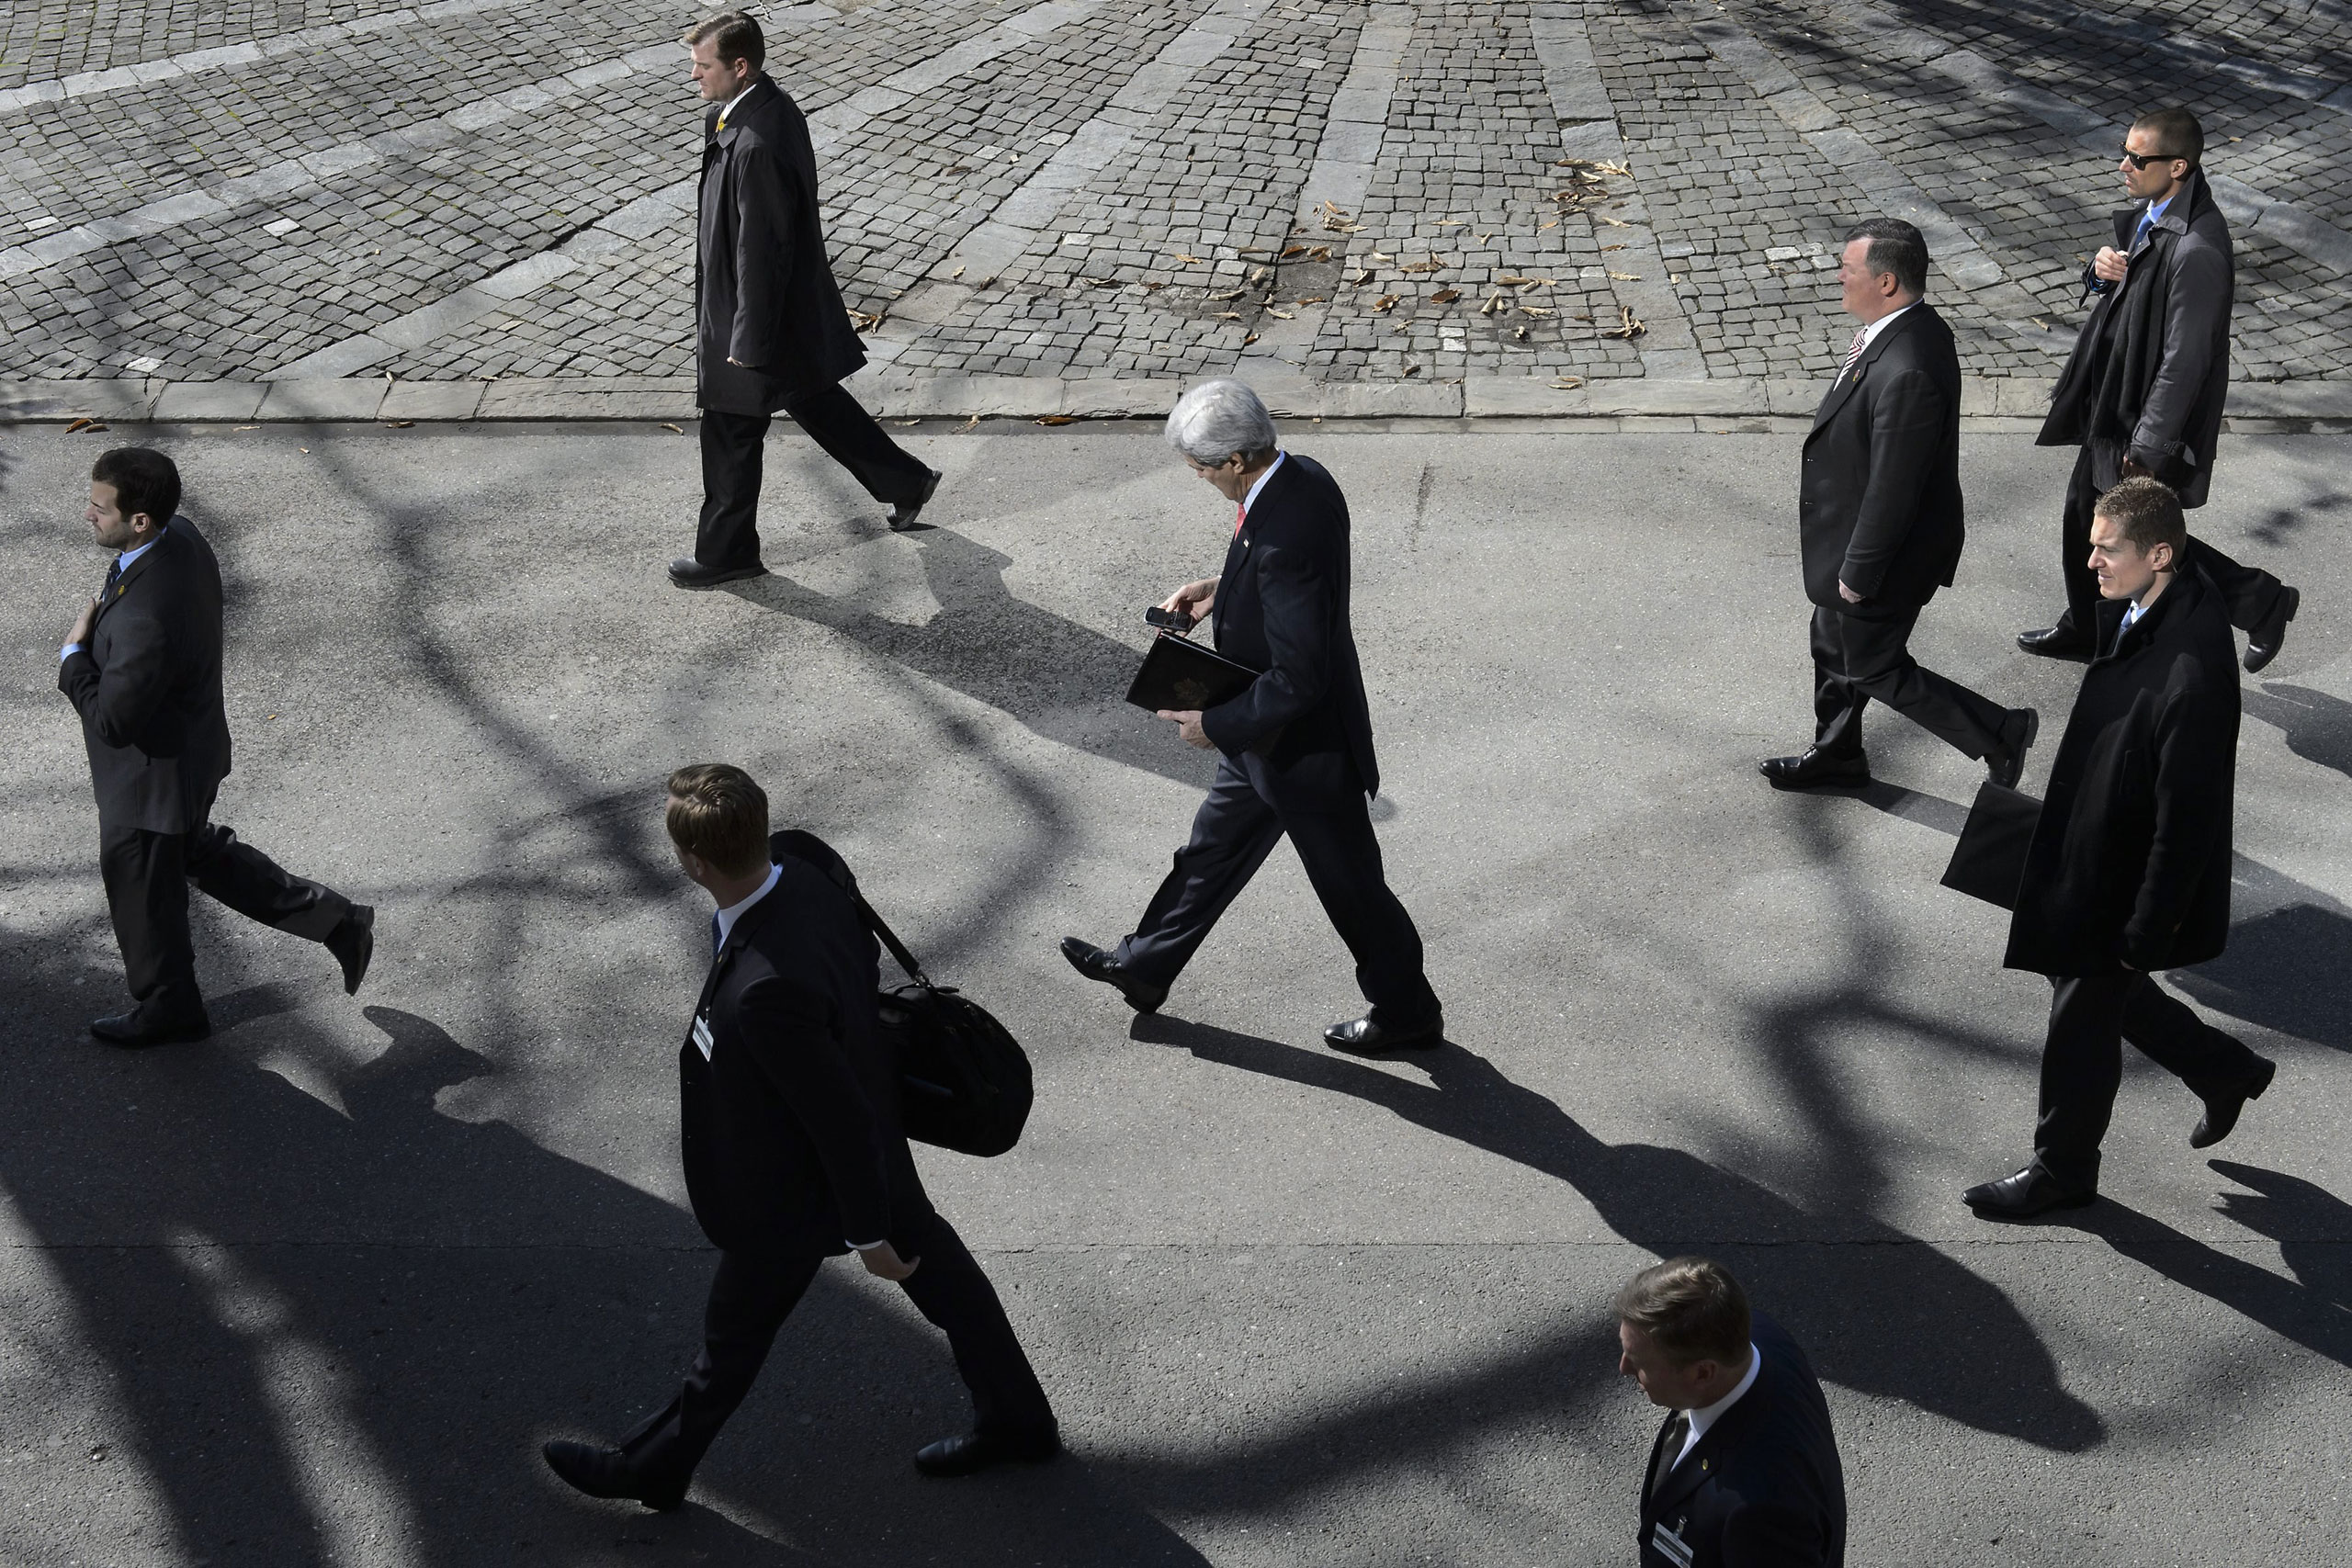 U.S. Secretary of State John Kerry walks as he takes a break for the lunch time after a bilateral meeting with Iranian Foreign Minister Mohammad Javad Zarif (not pictured) for a new round of Nuclear Iran Talks, in Montreux, Switzerland. March, 3 2015.